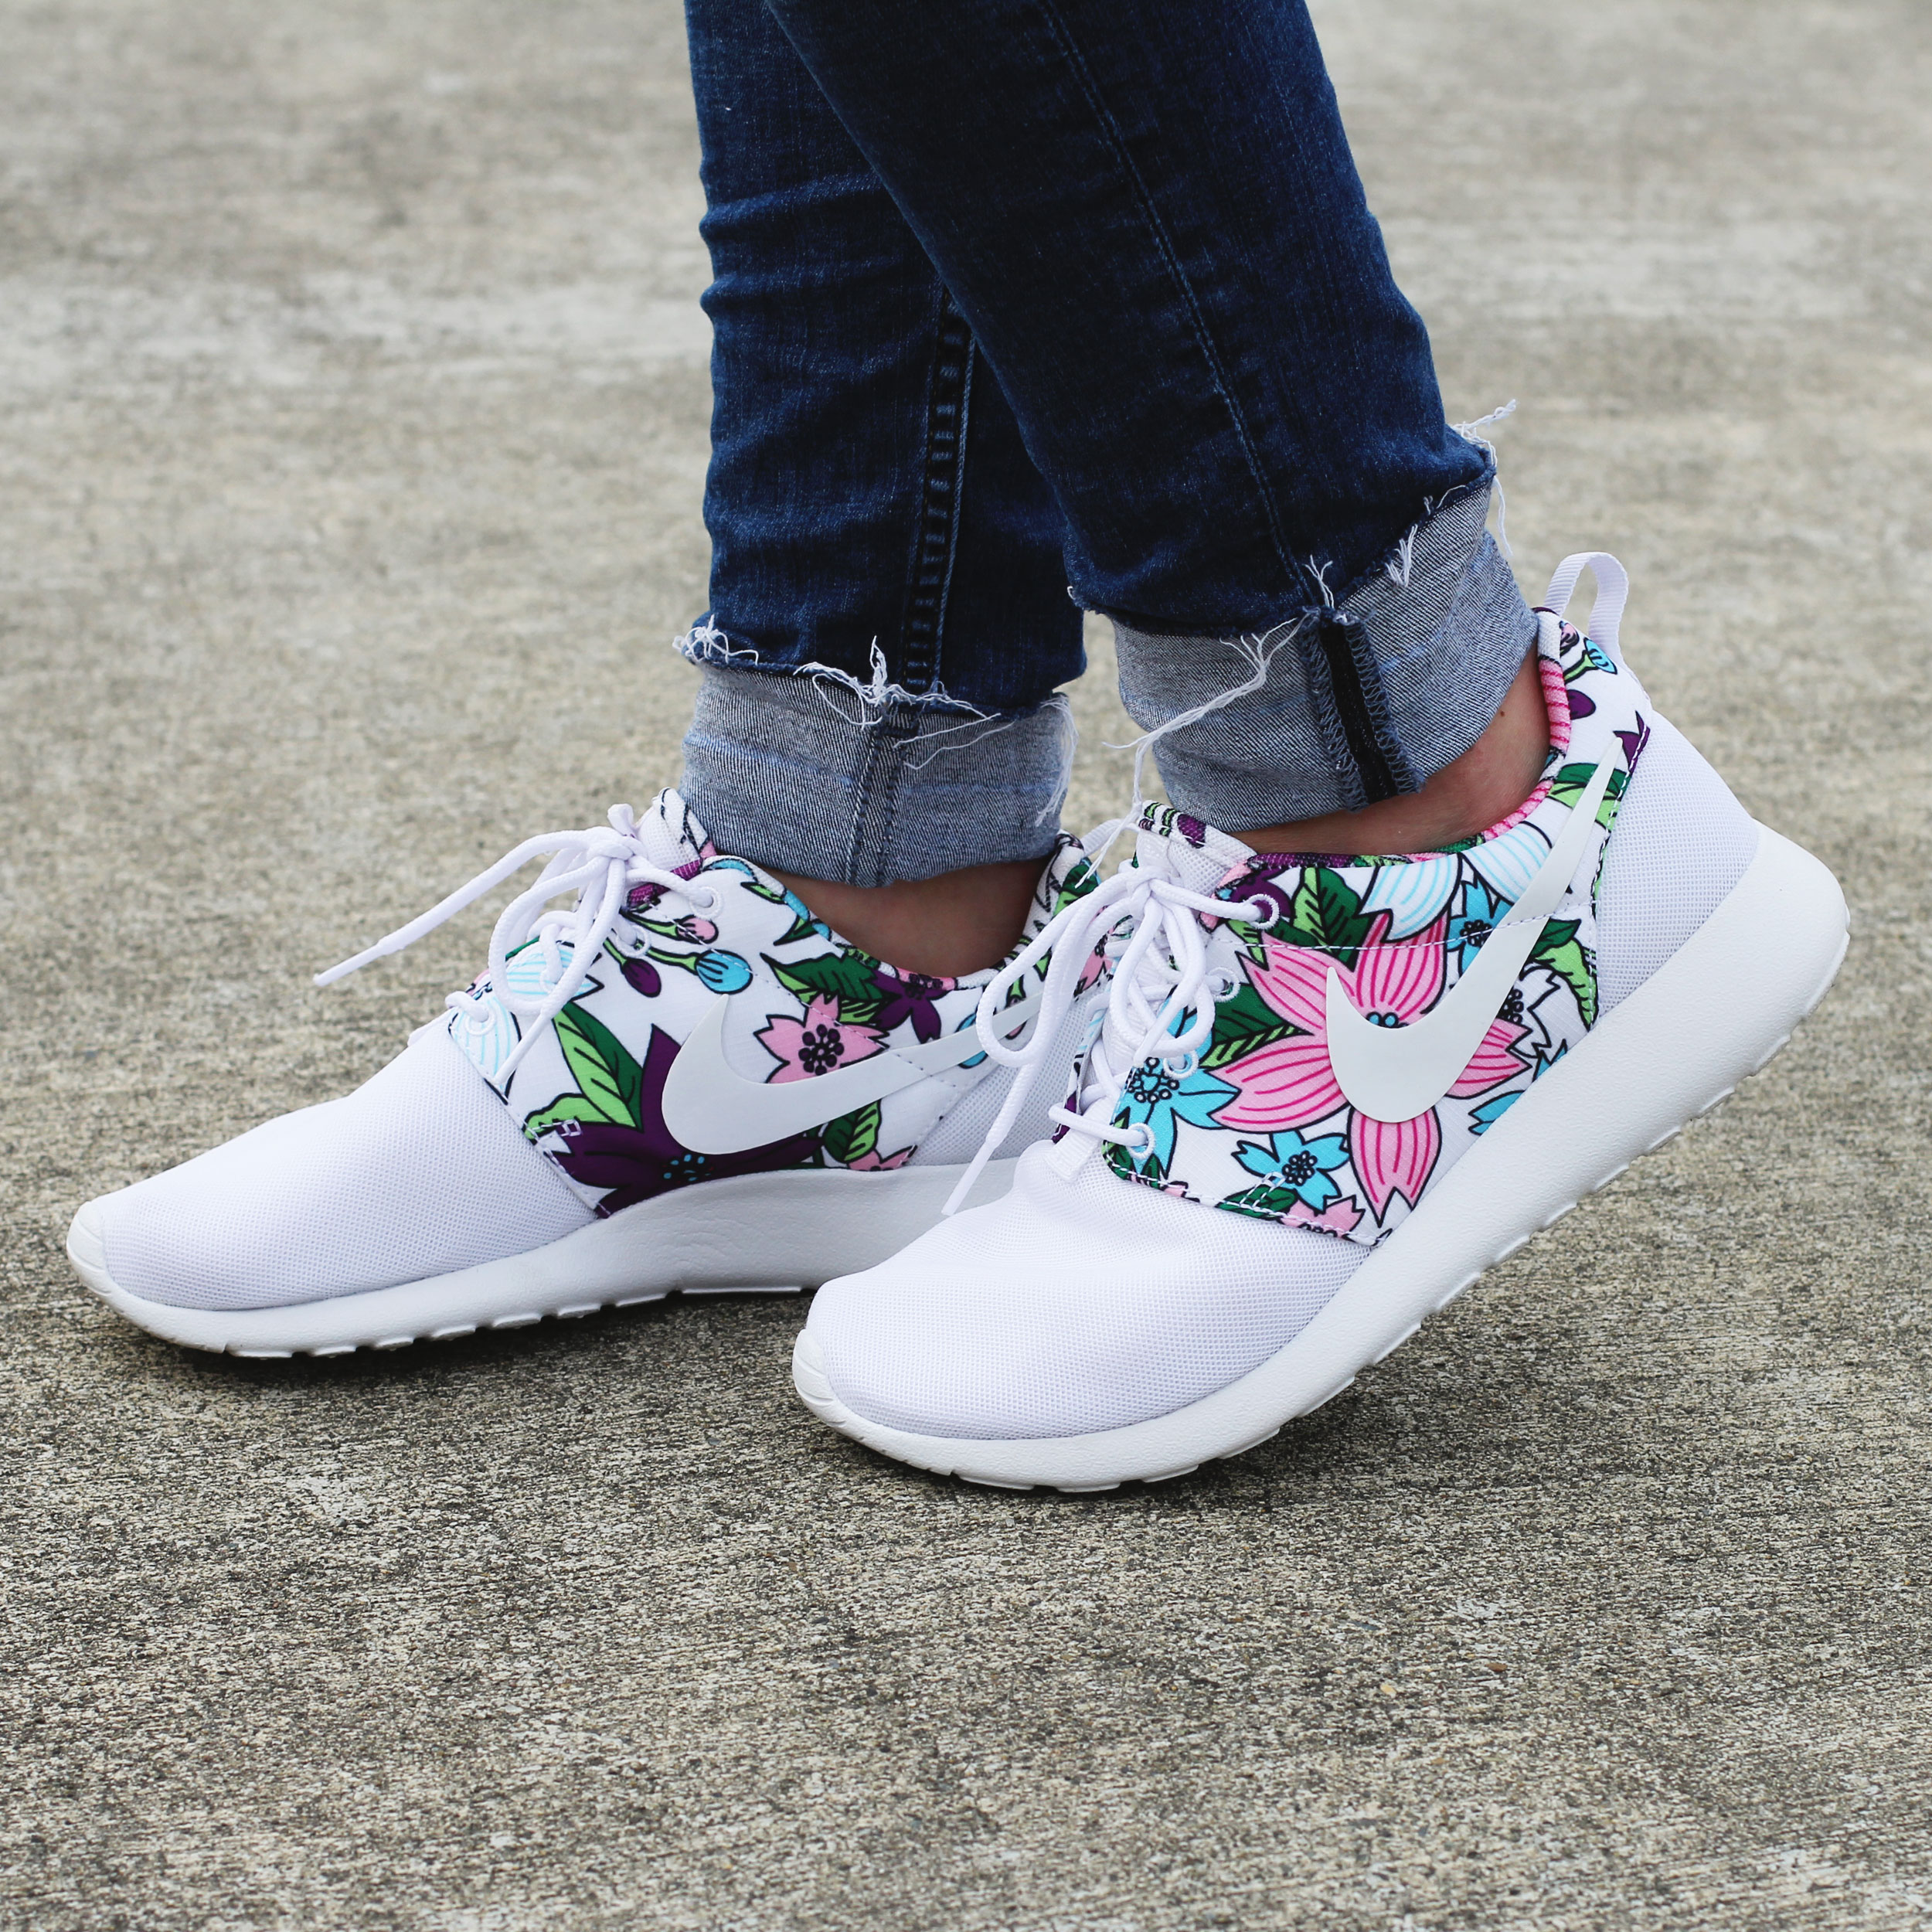 Nike Roshe Run Floral Print, Floral Nikes, Flower Running Shoes